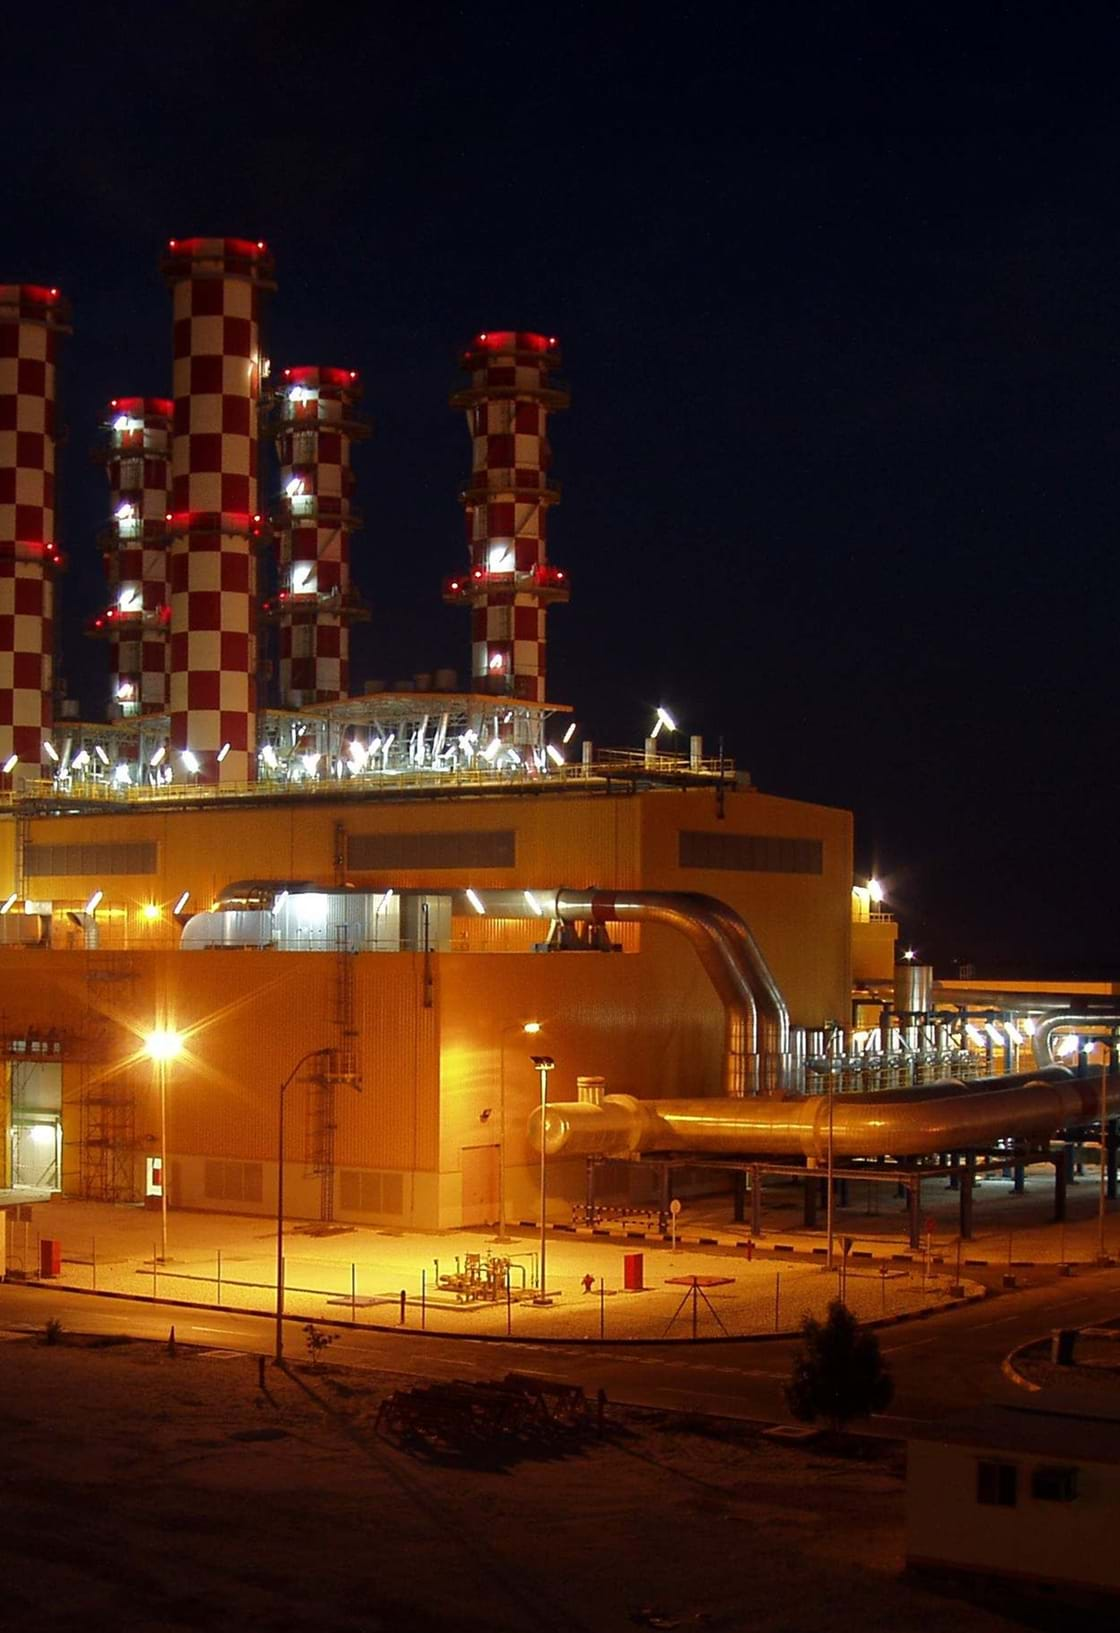 image of power plant AL Hidd 1 by night